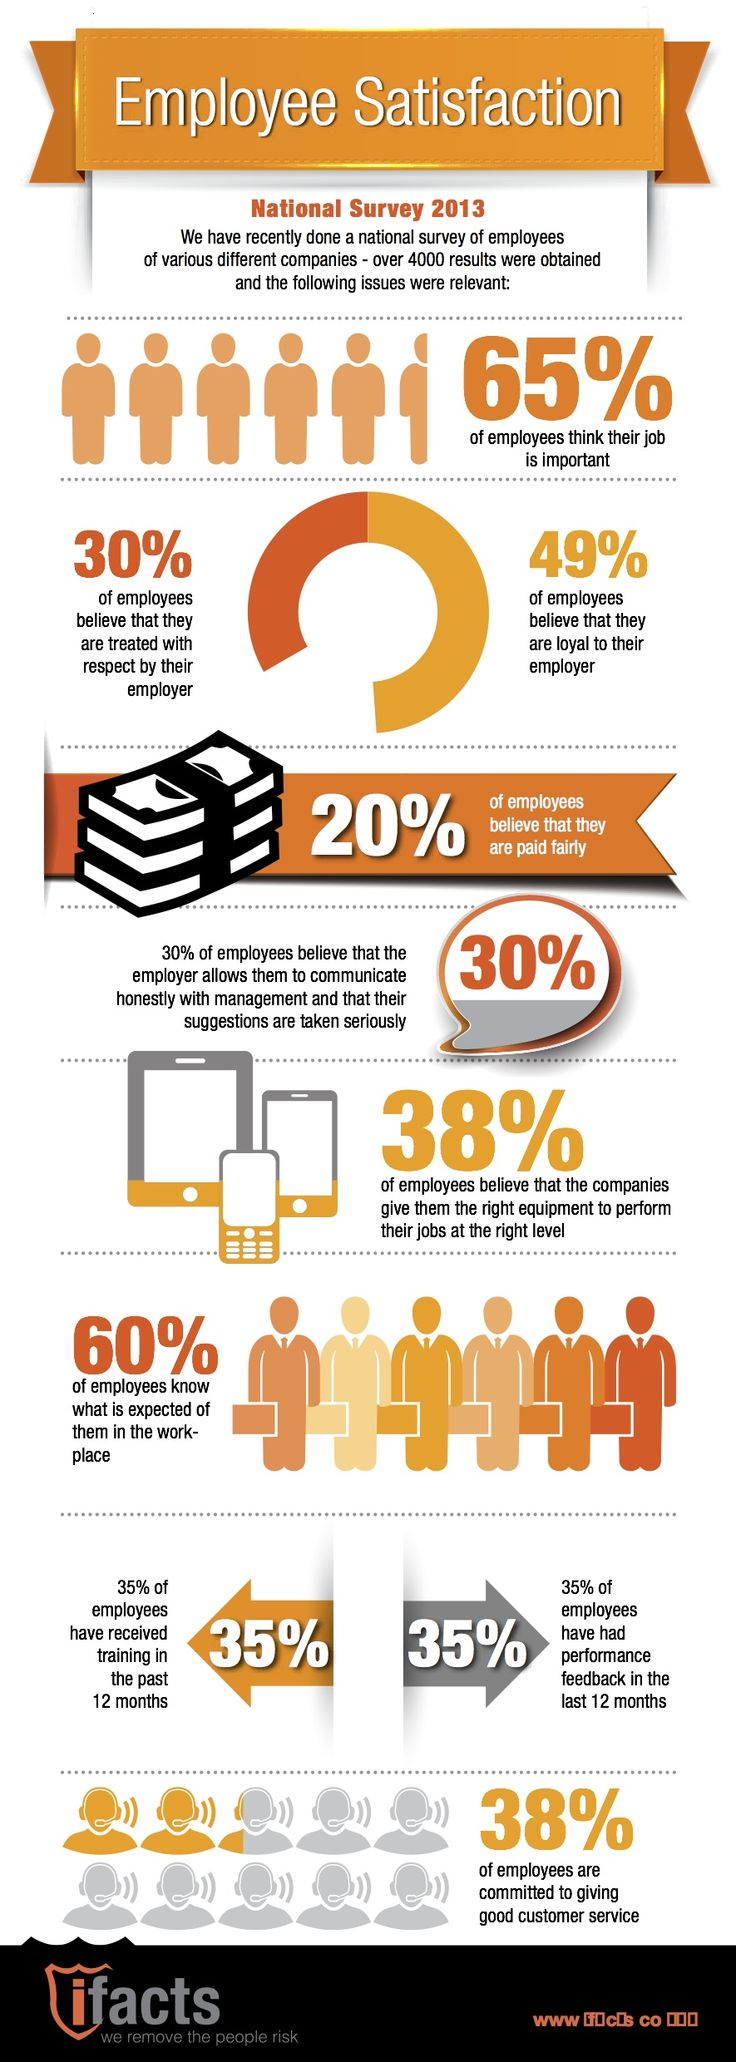 Employee Satisfaction Infographic 2